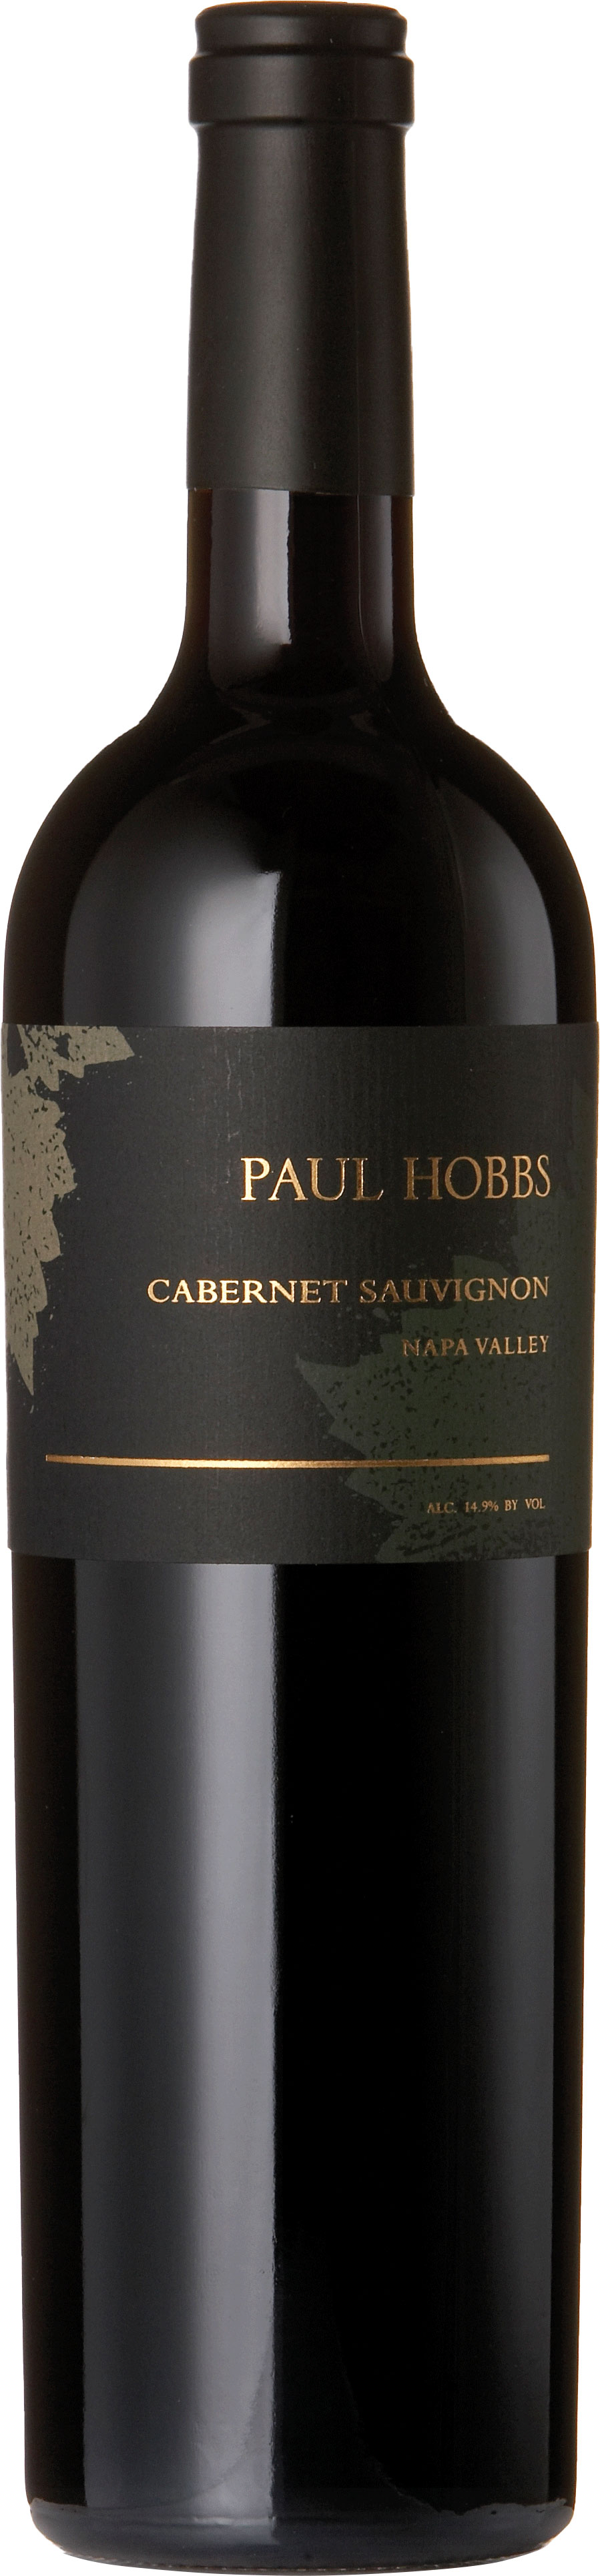 Paul Hobbs - Cabernet Sauvignon Napa Valley California 2015 12x 75cl Bottles